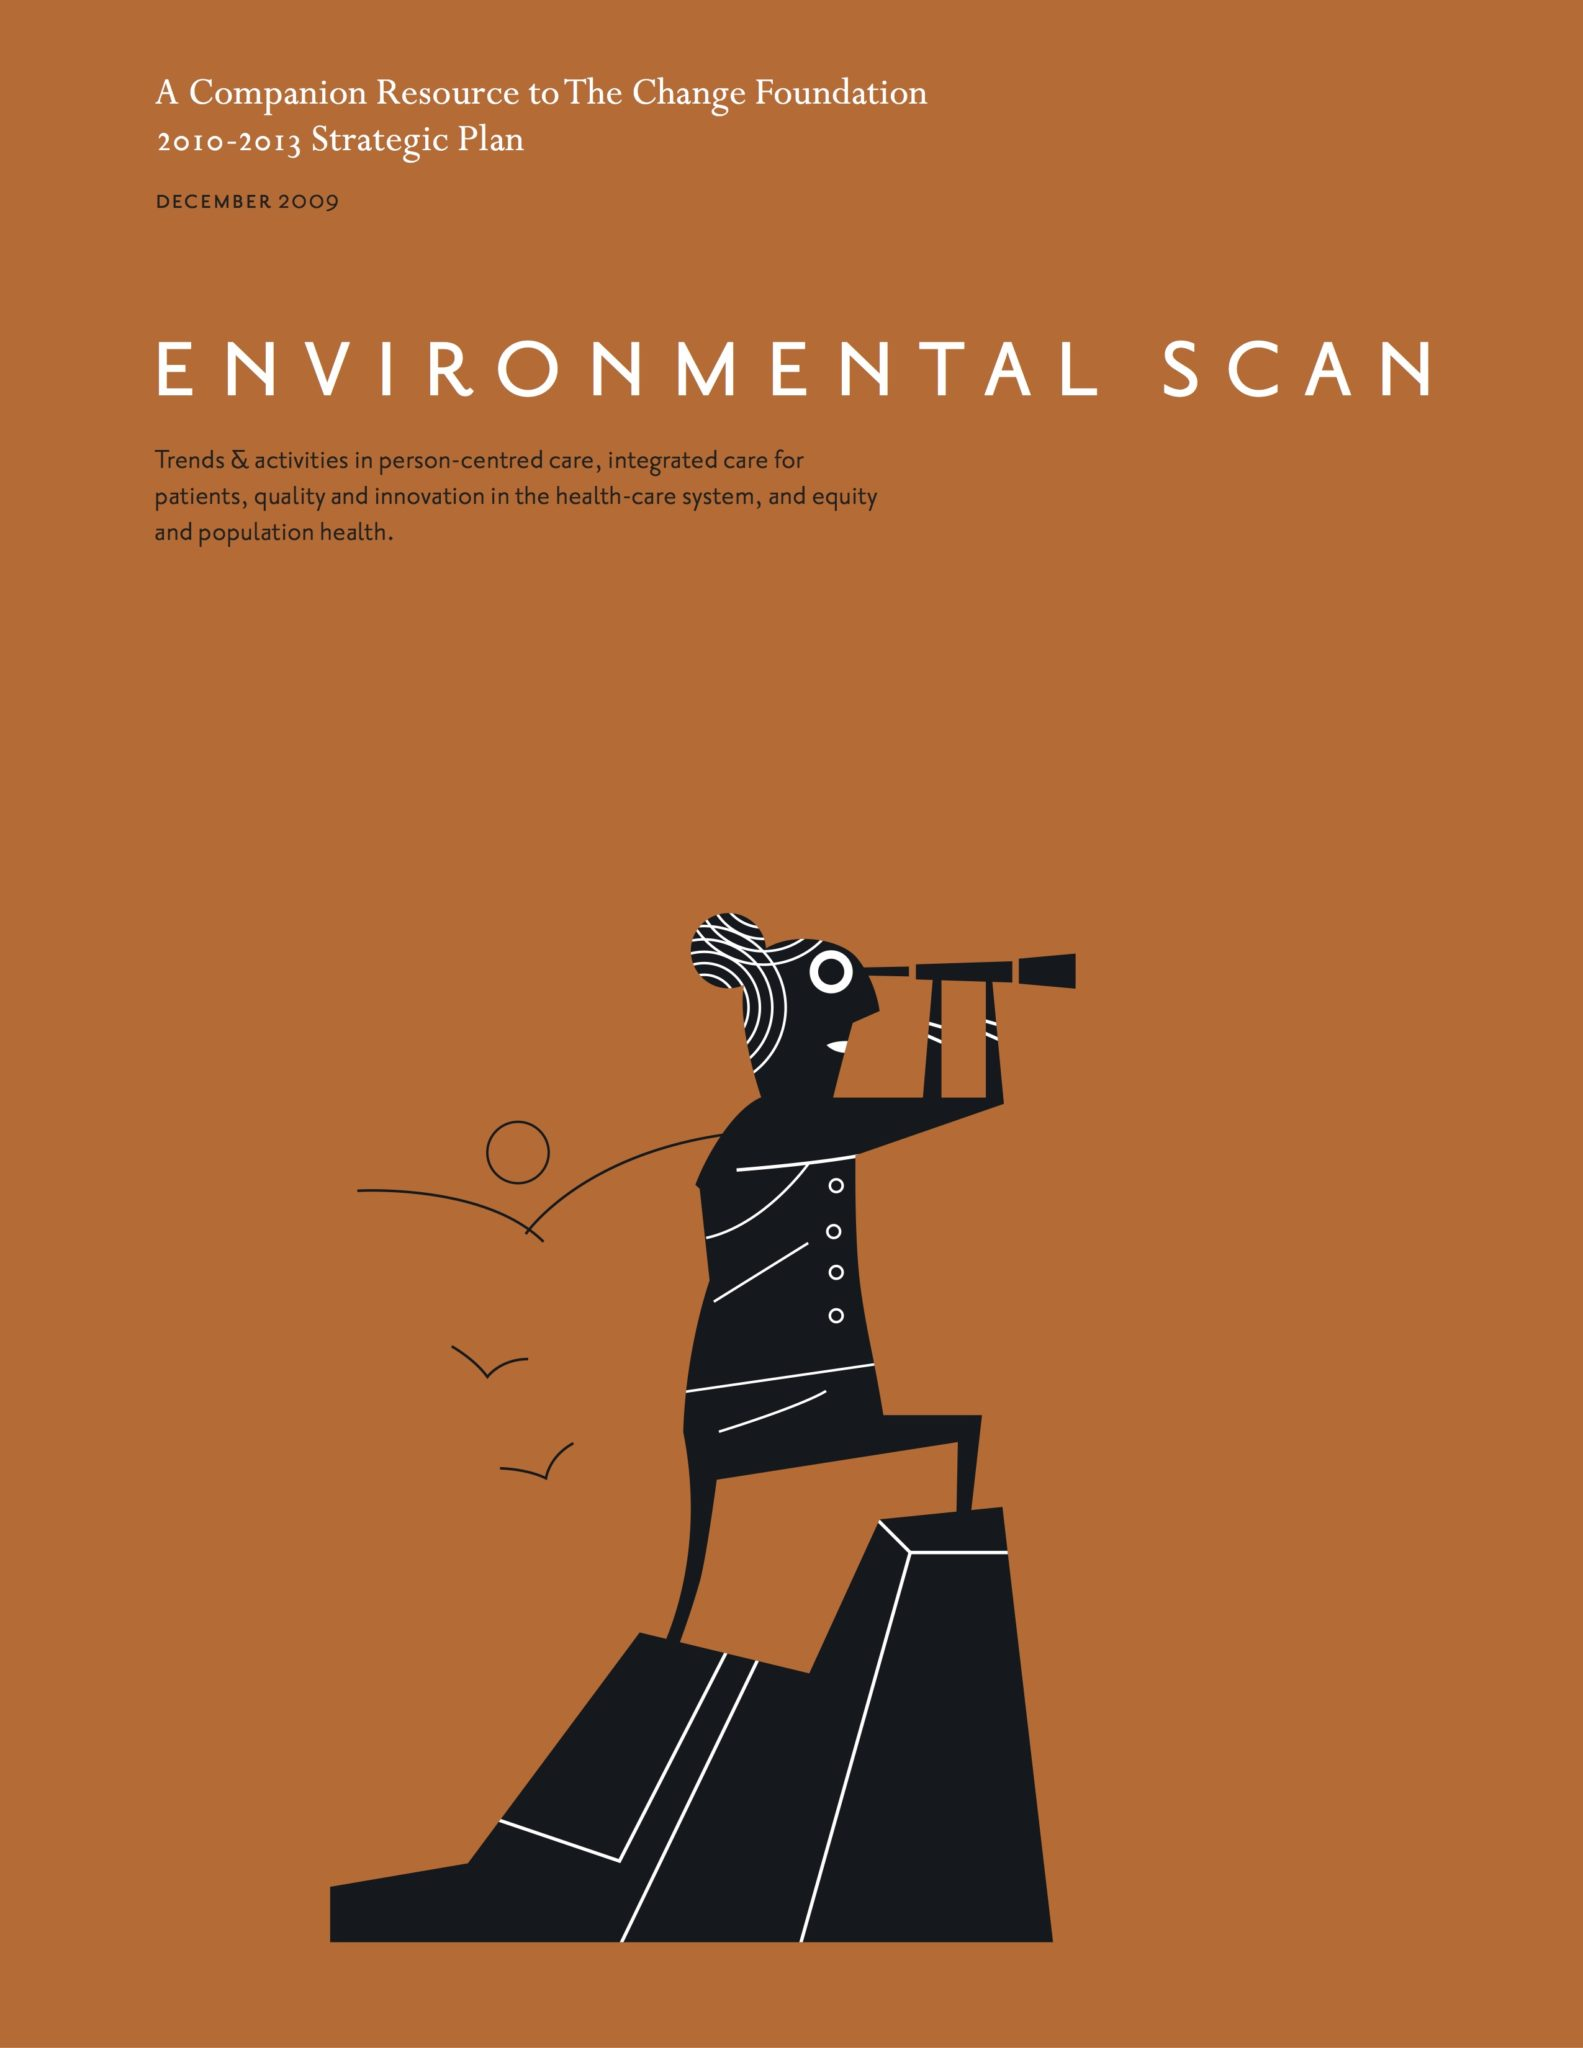 Environmental Scan: Companion to the Change Foundation 2010-2013 Strategic Plan